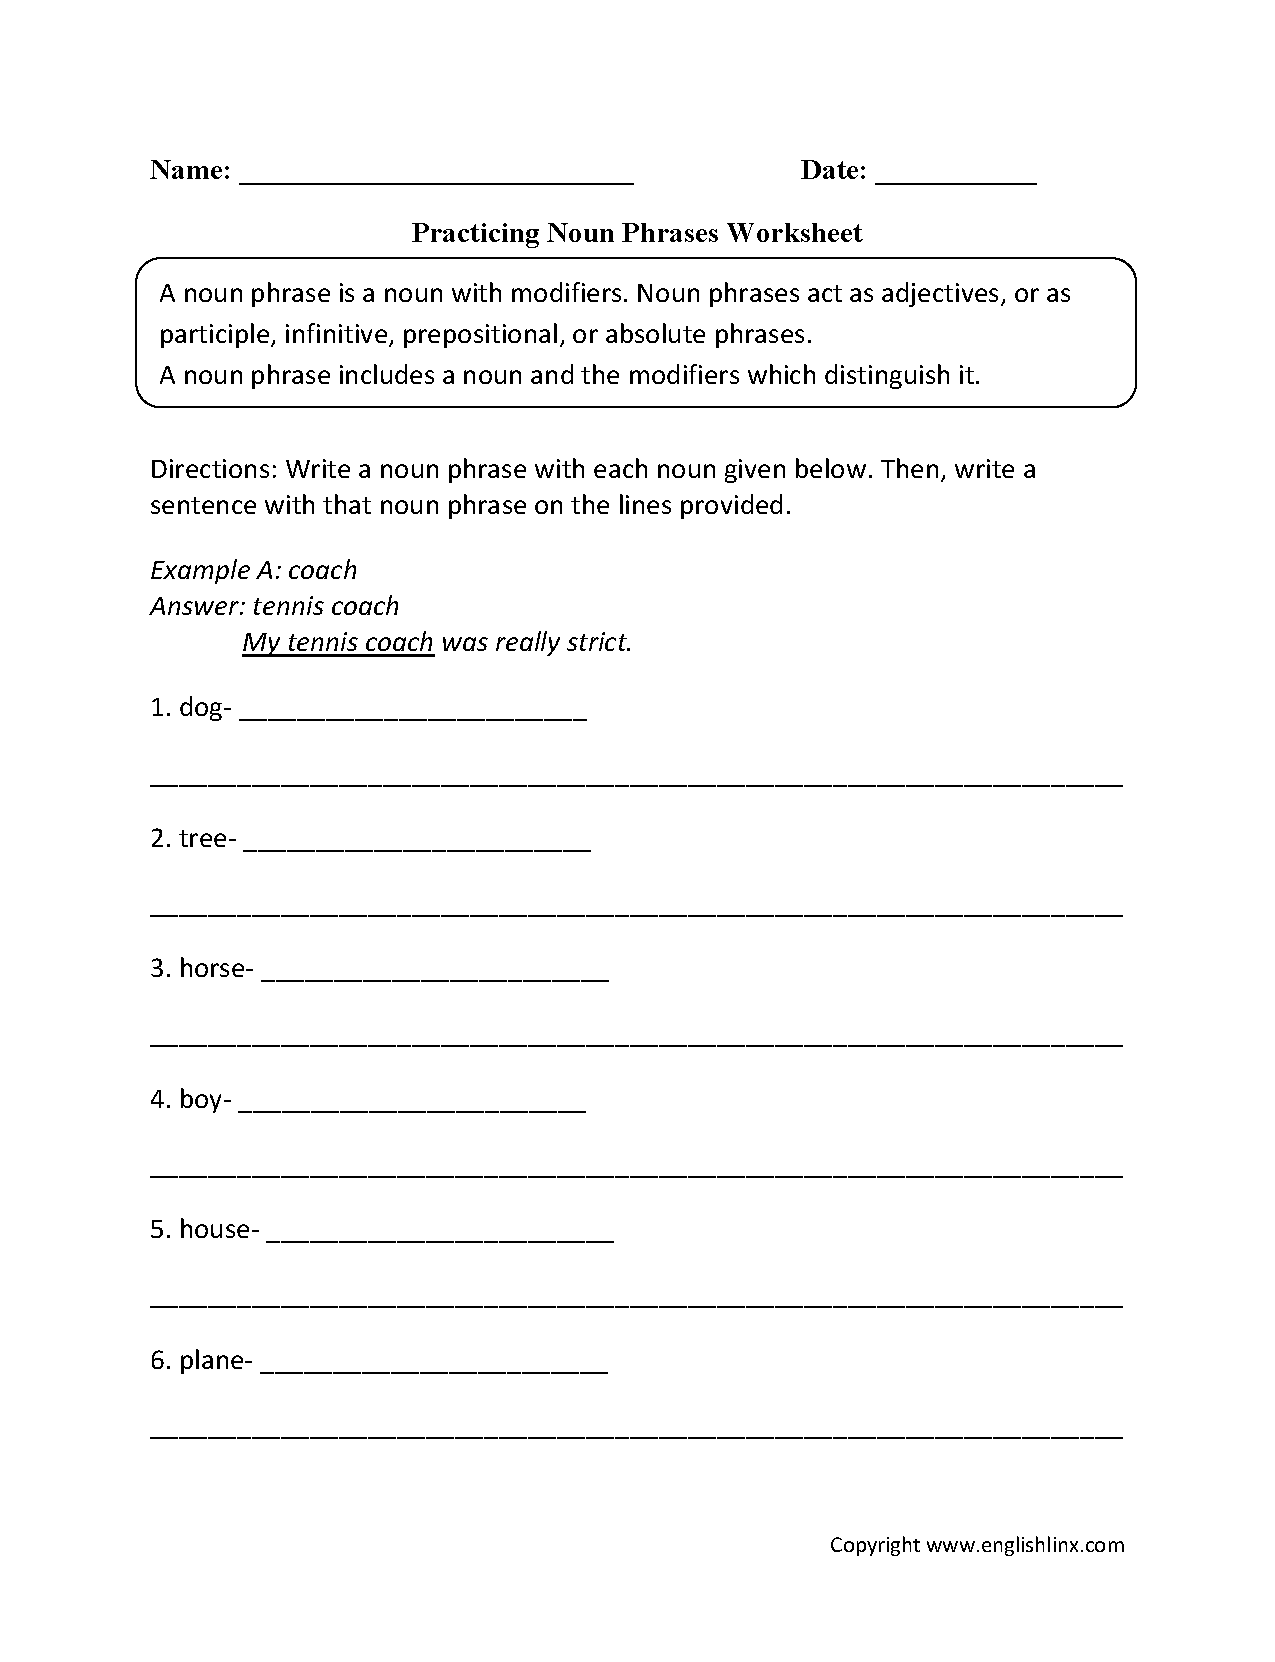 worksheet Clauses And Phrases Worksheets nouns worksheets noun phrases worksheets